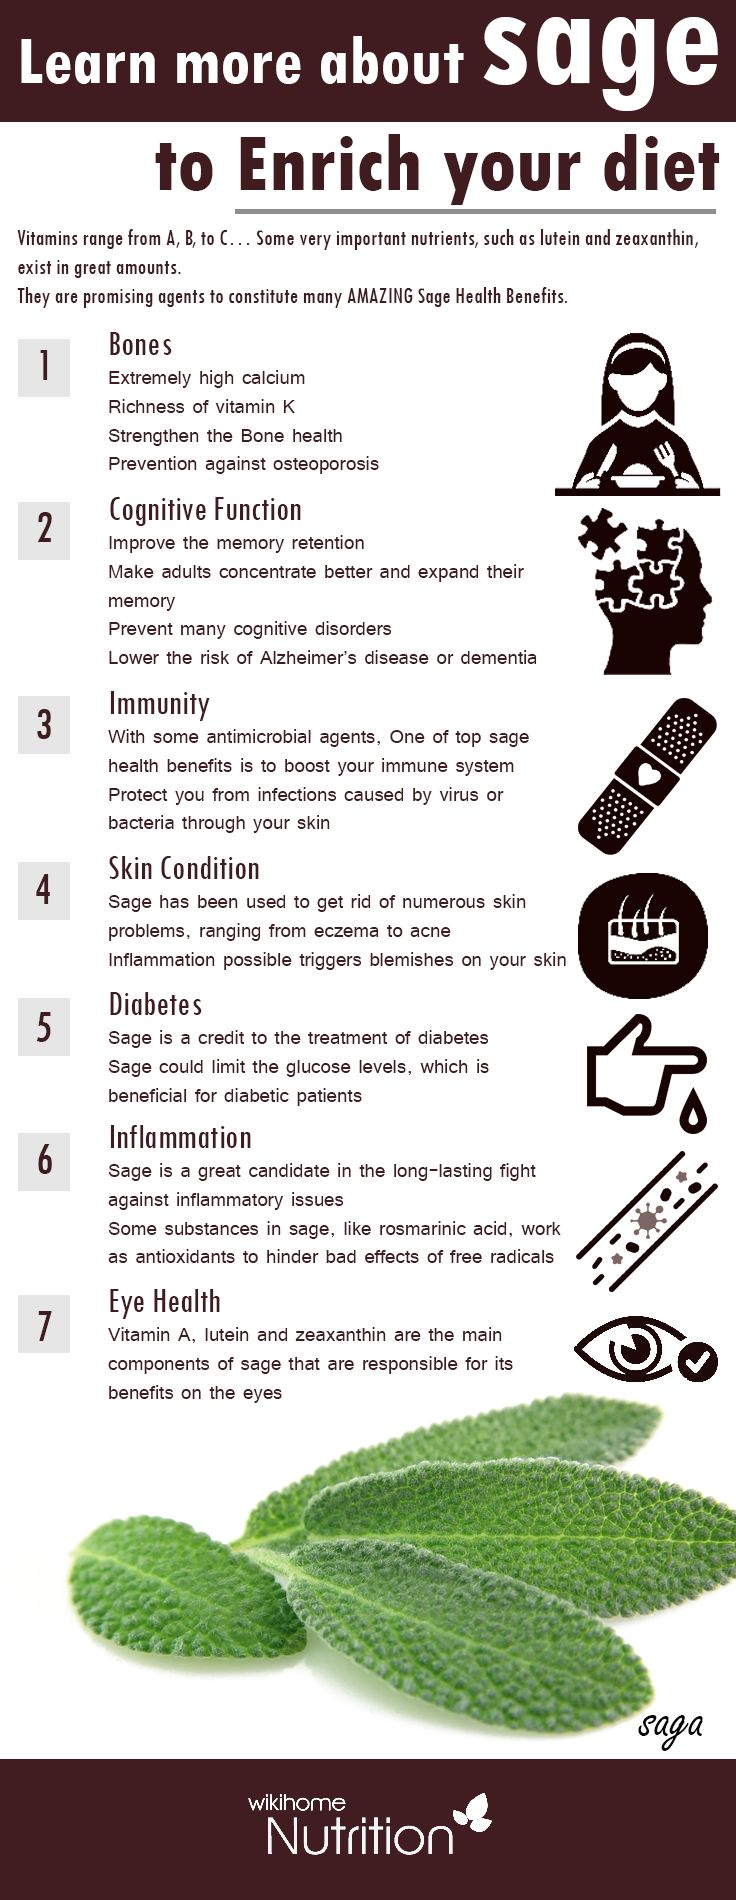 Health Benefits of sage: Vitamins range from A, B, to C… Some very important nutrients, such as lutein and zeaxanthin, exist in great amounts. They are promising agents to constitute many amazing sage health benefits #health #infographic #Boneshealth #Cognitive Function #Immunity #Skin Condition #Diabetes #Inflammation #Eye Health